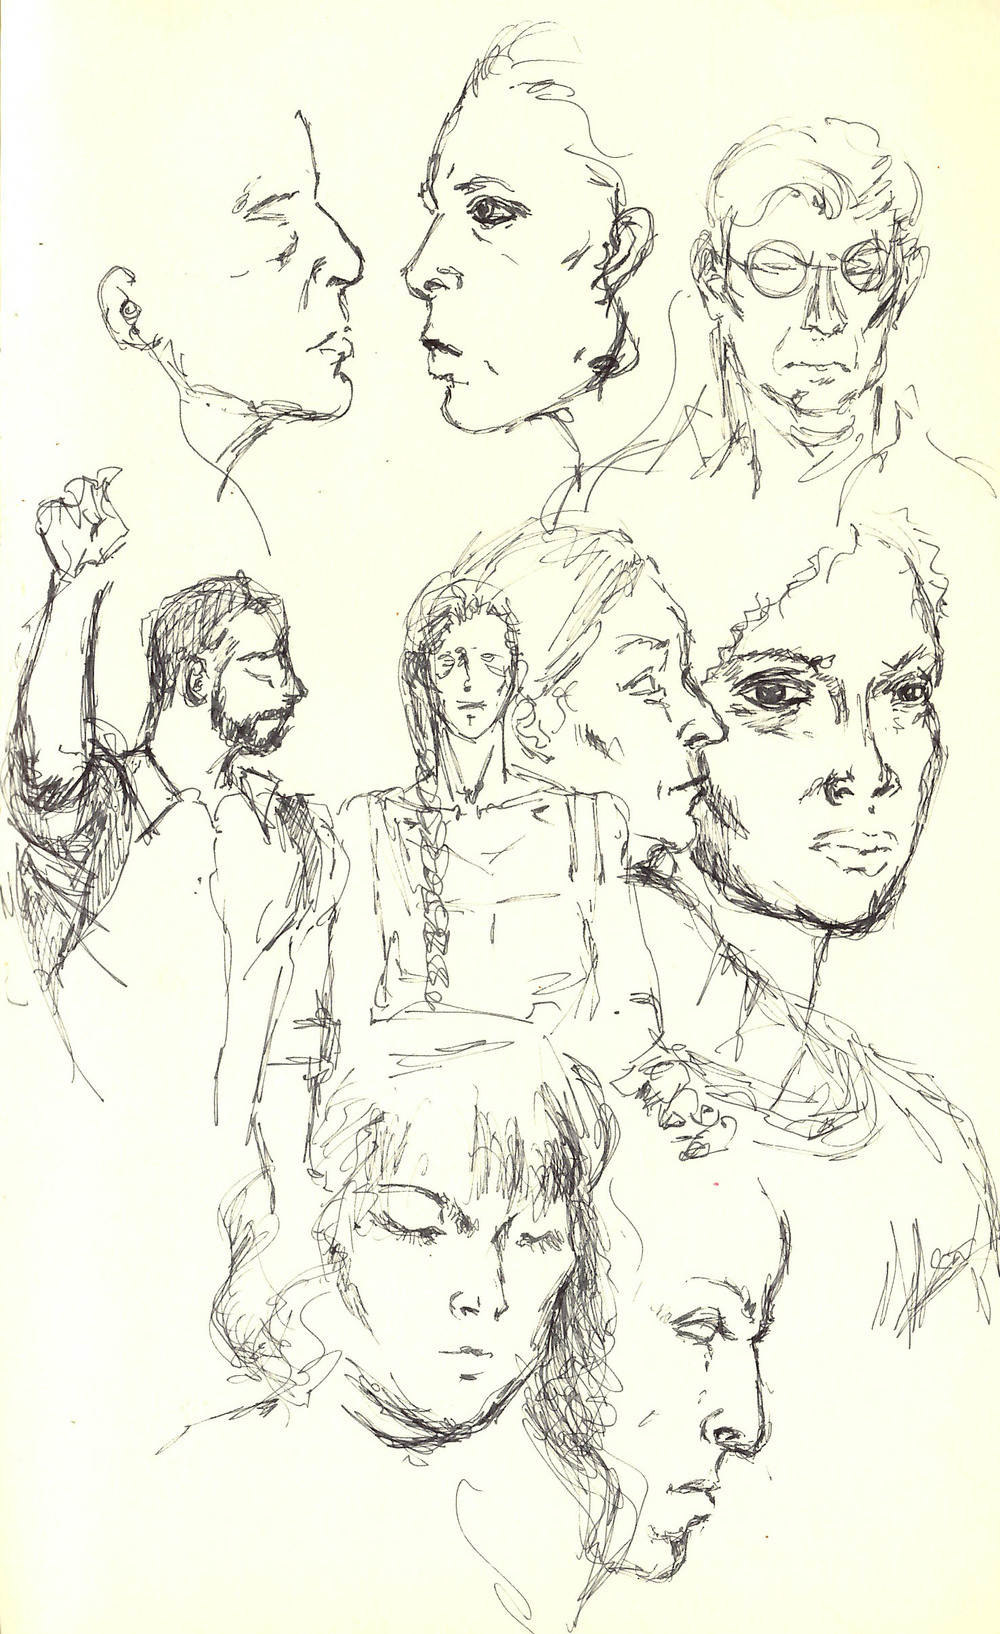 Subway Drawings 4.jpg